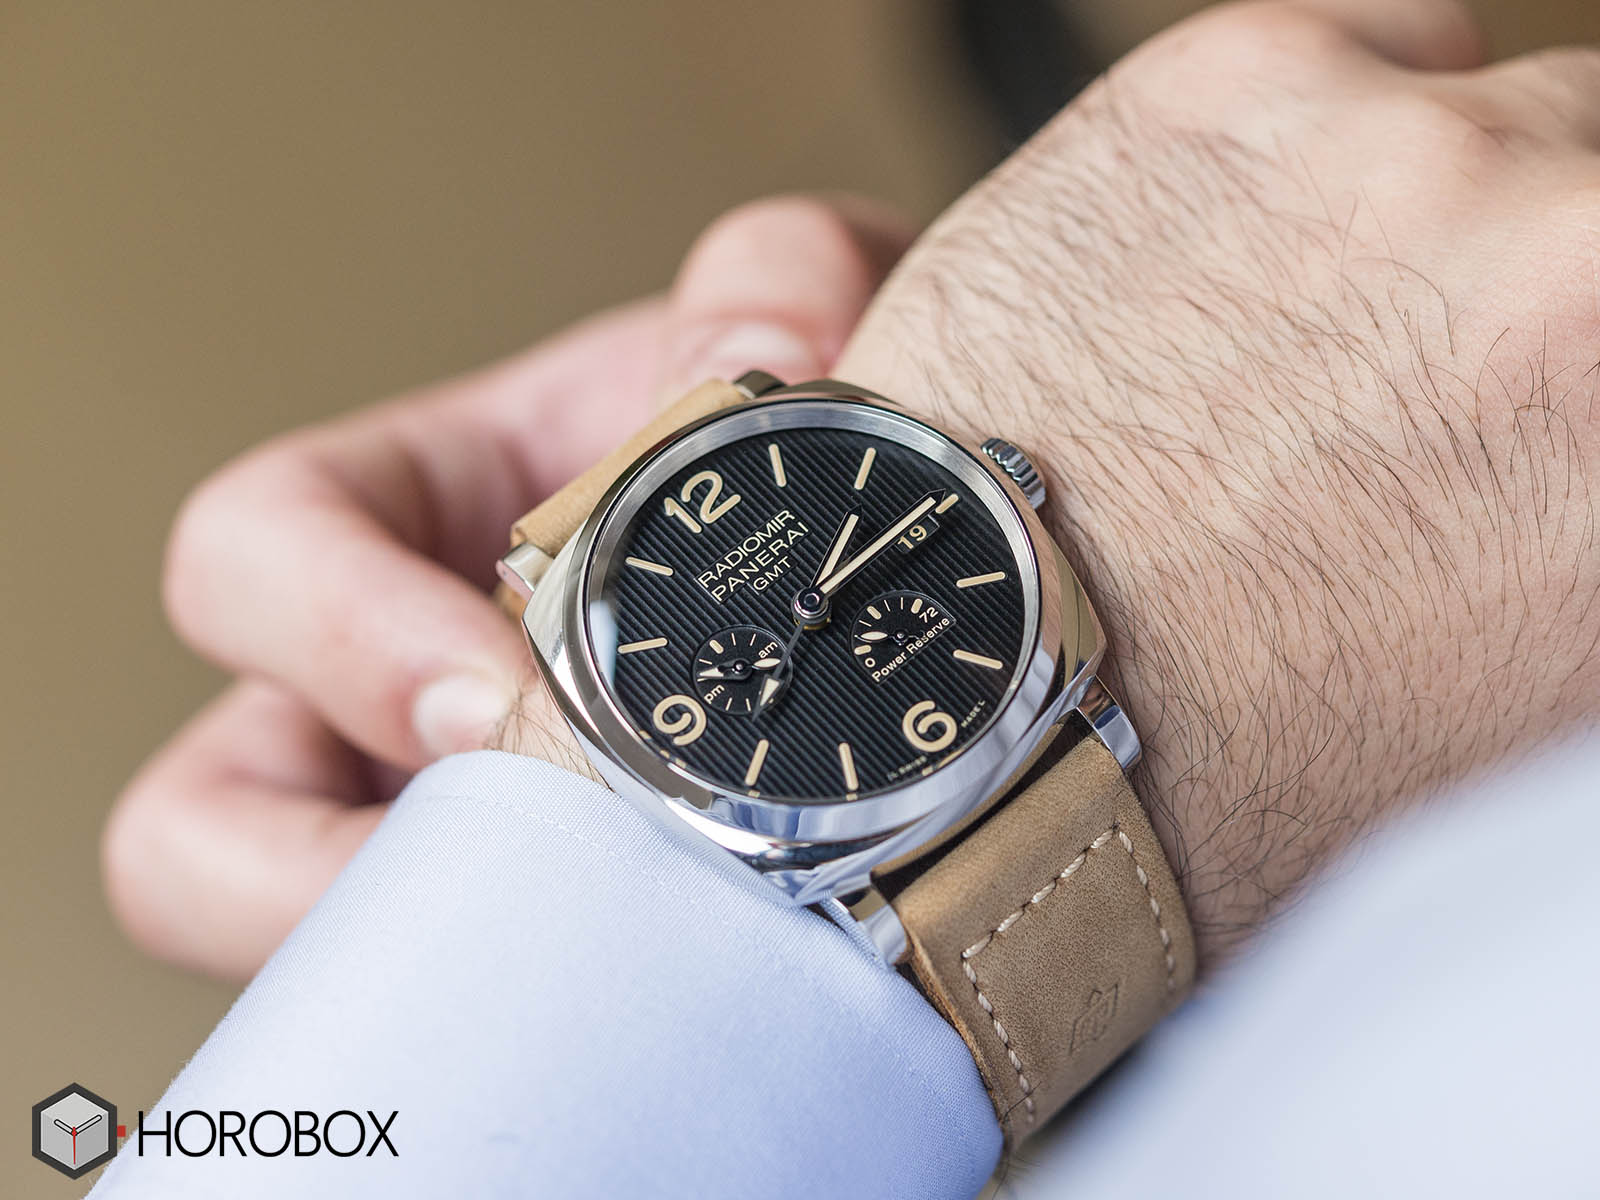 Officine-panerai-power-reserve-11.jpg